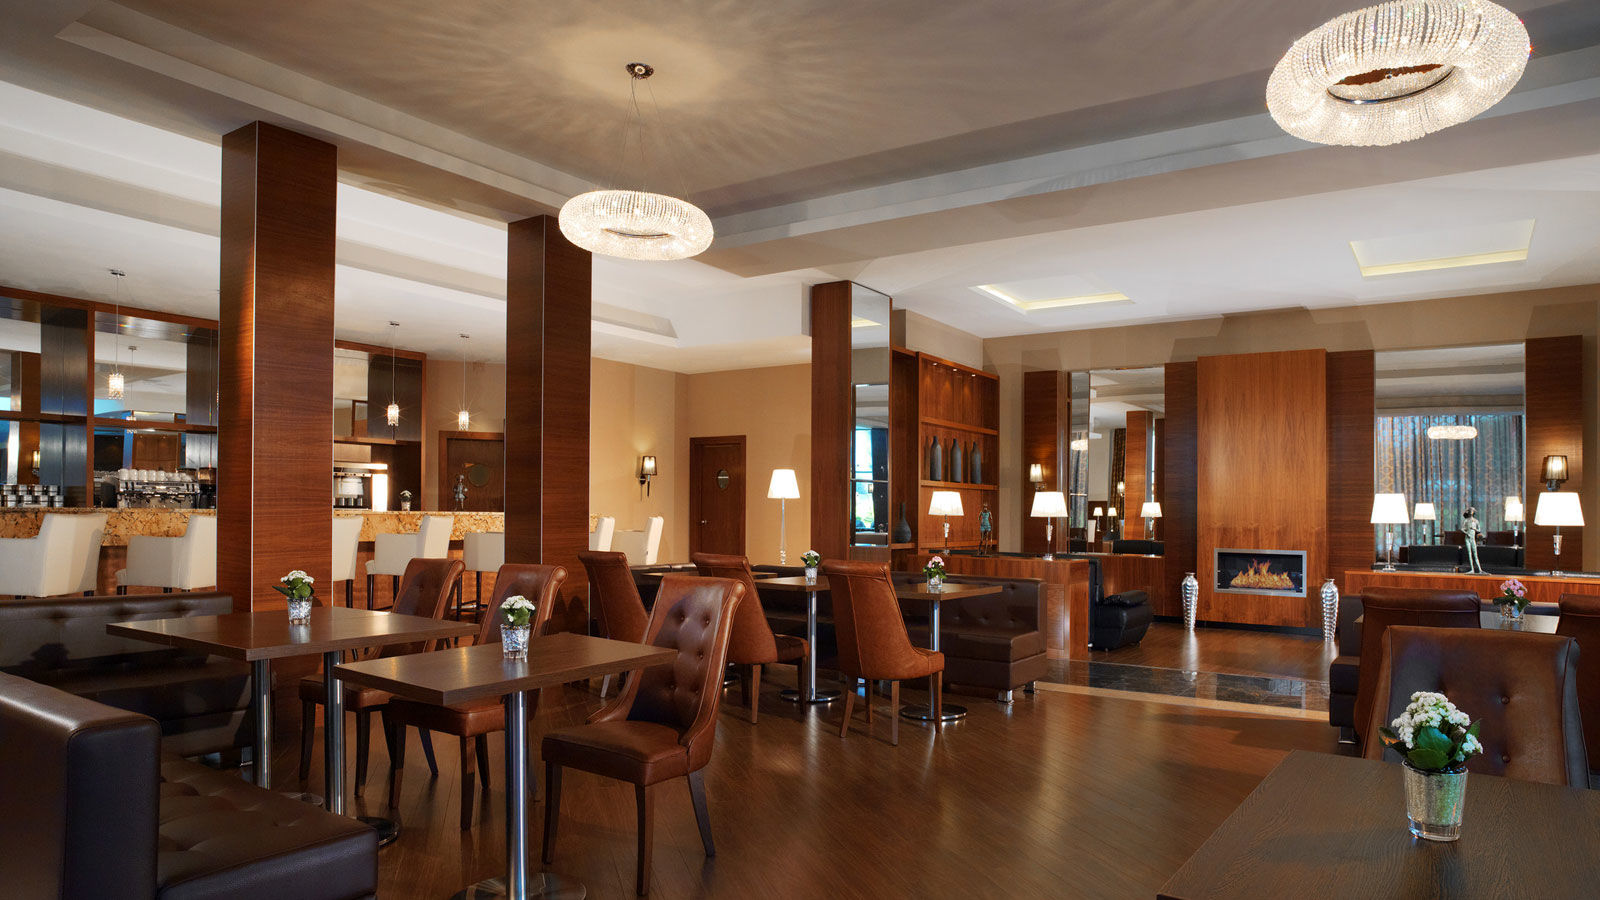 The Lobby bar with fireplace at Sheraton Moscow Sheremetyevo